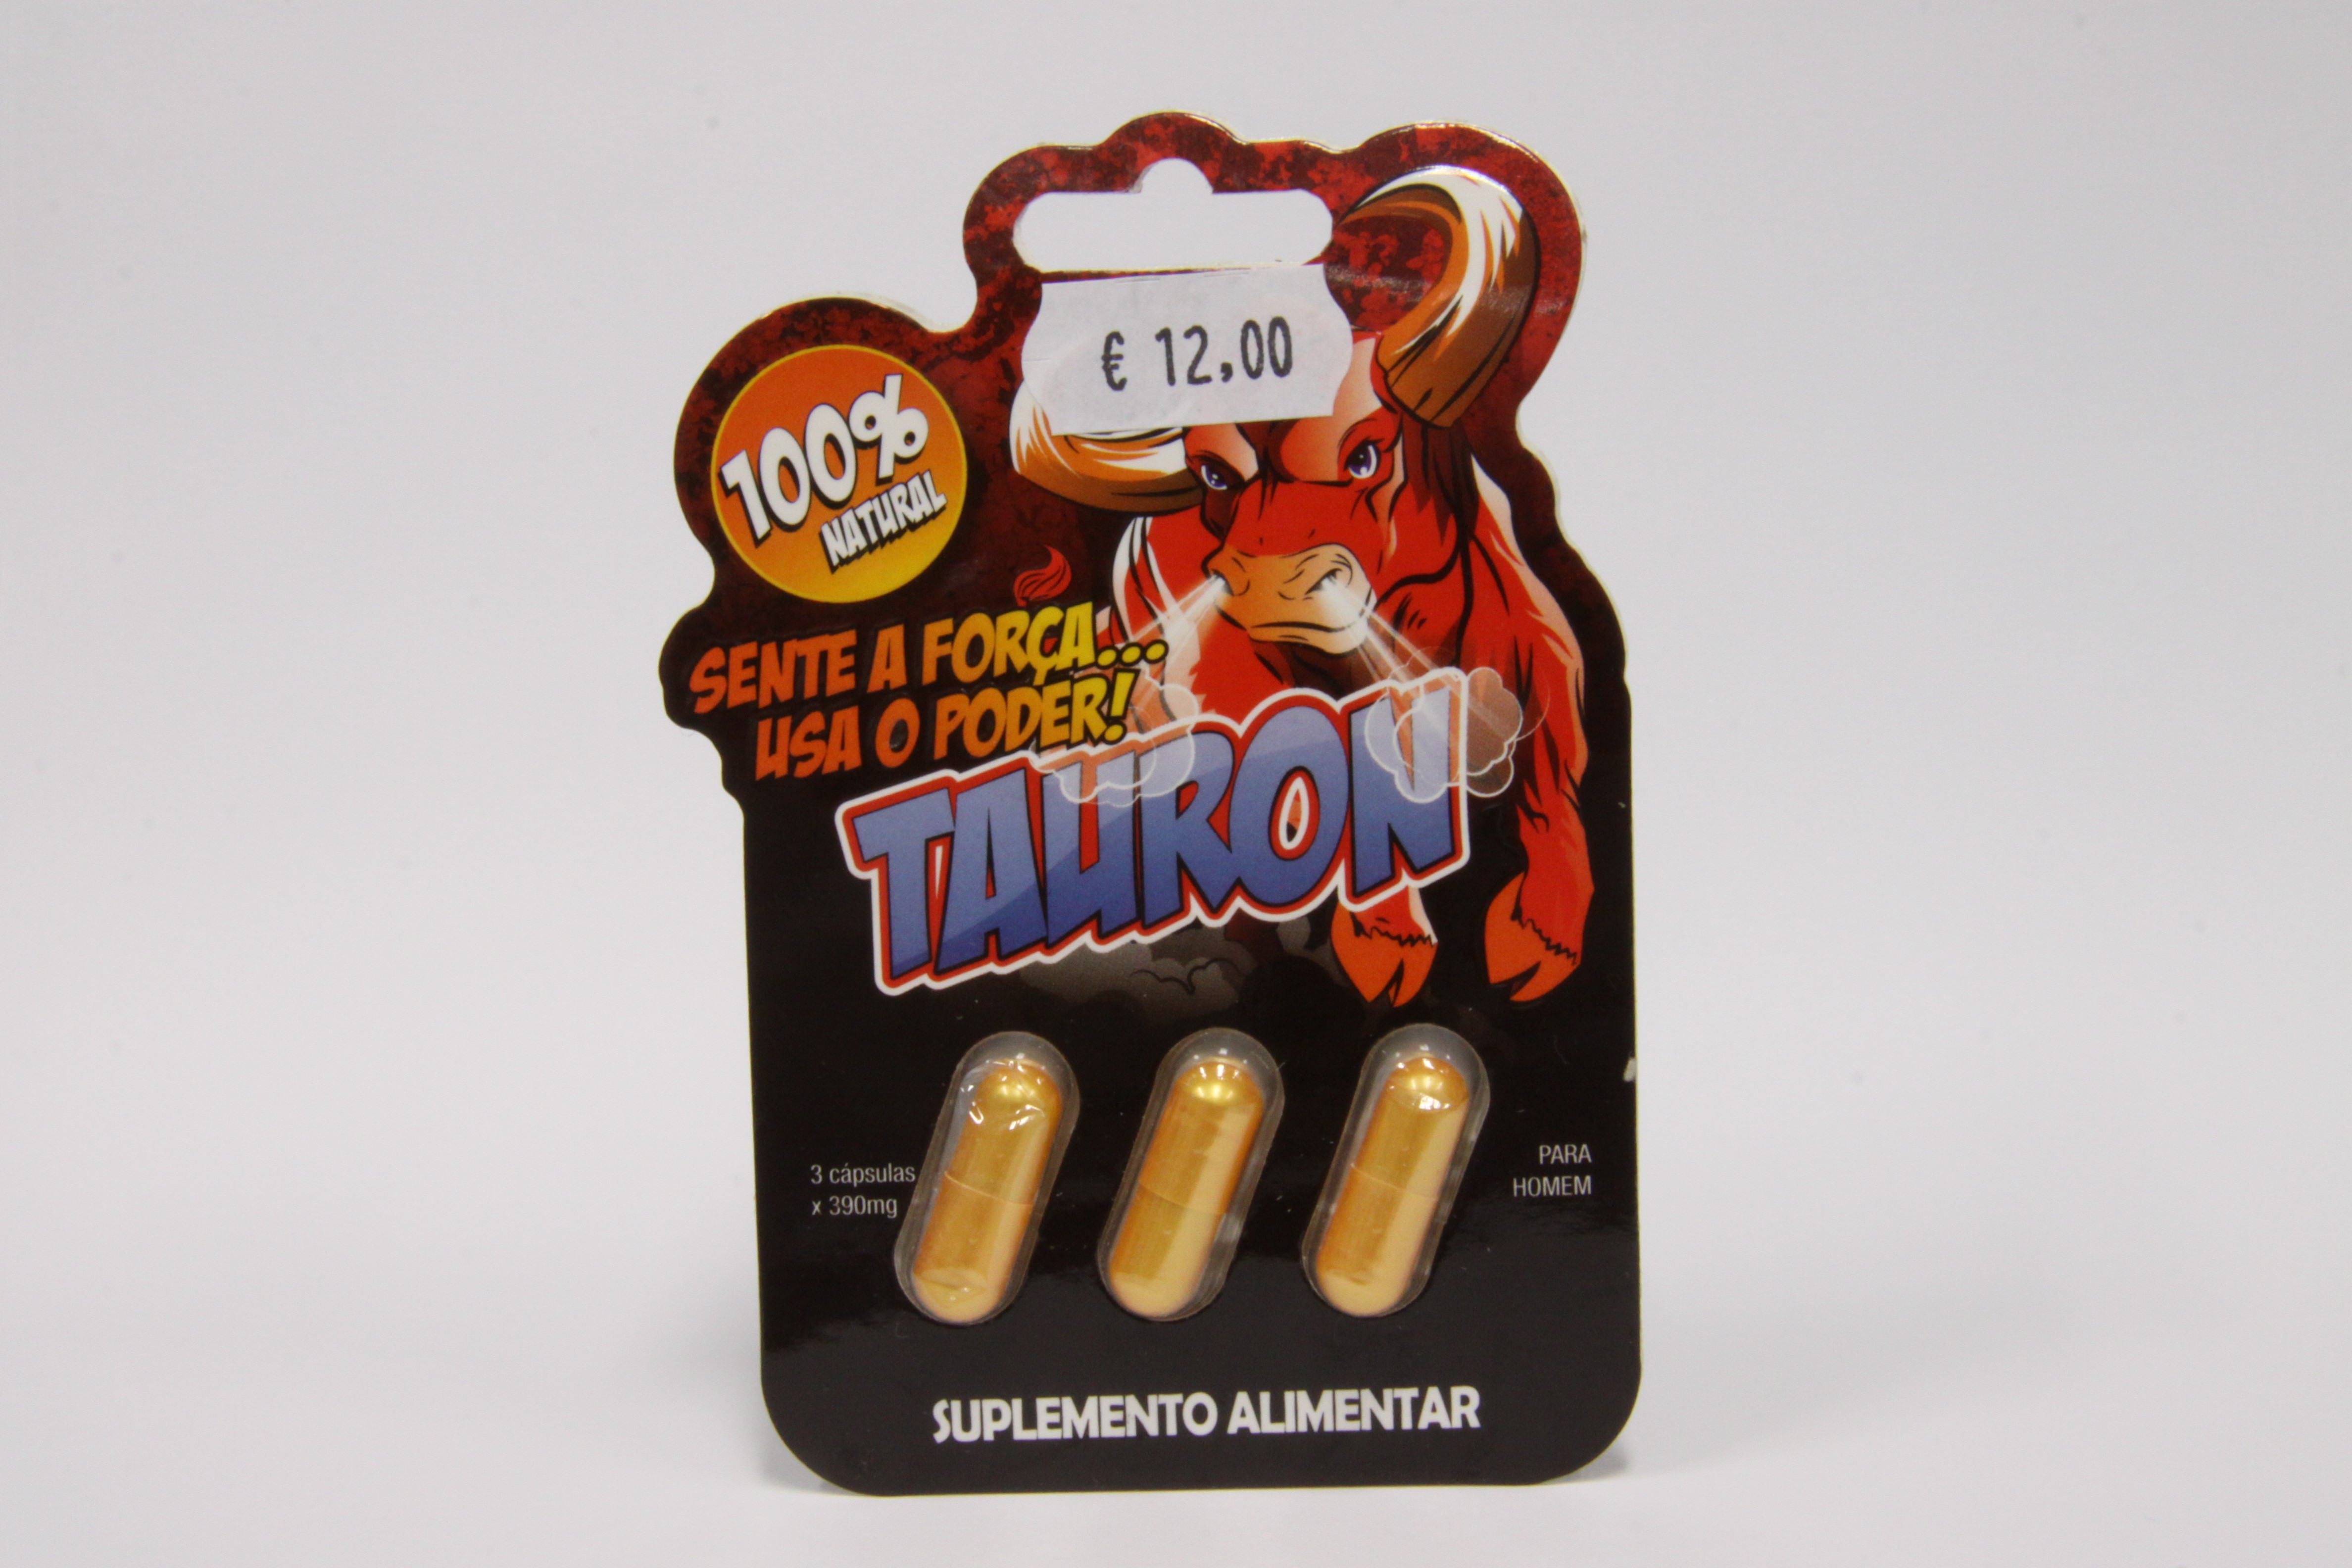 Image of the illigal product: Tauron